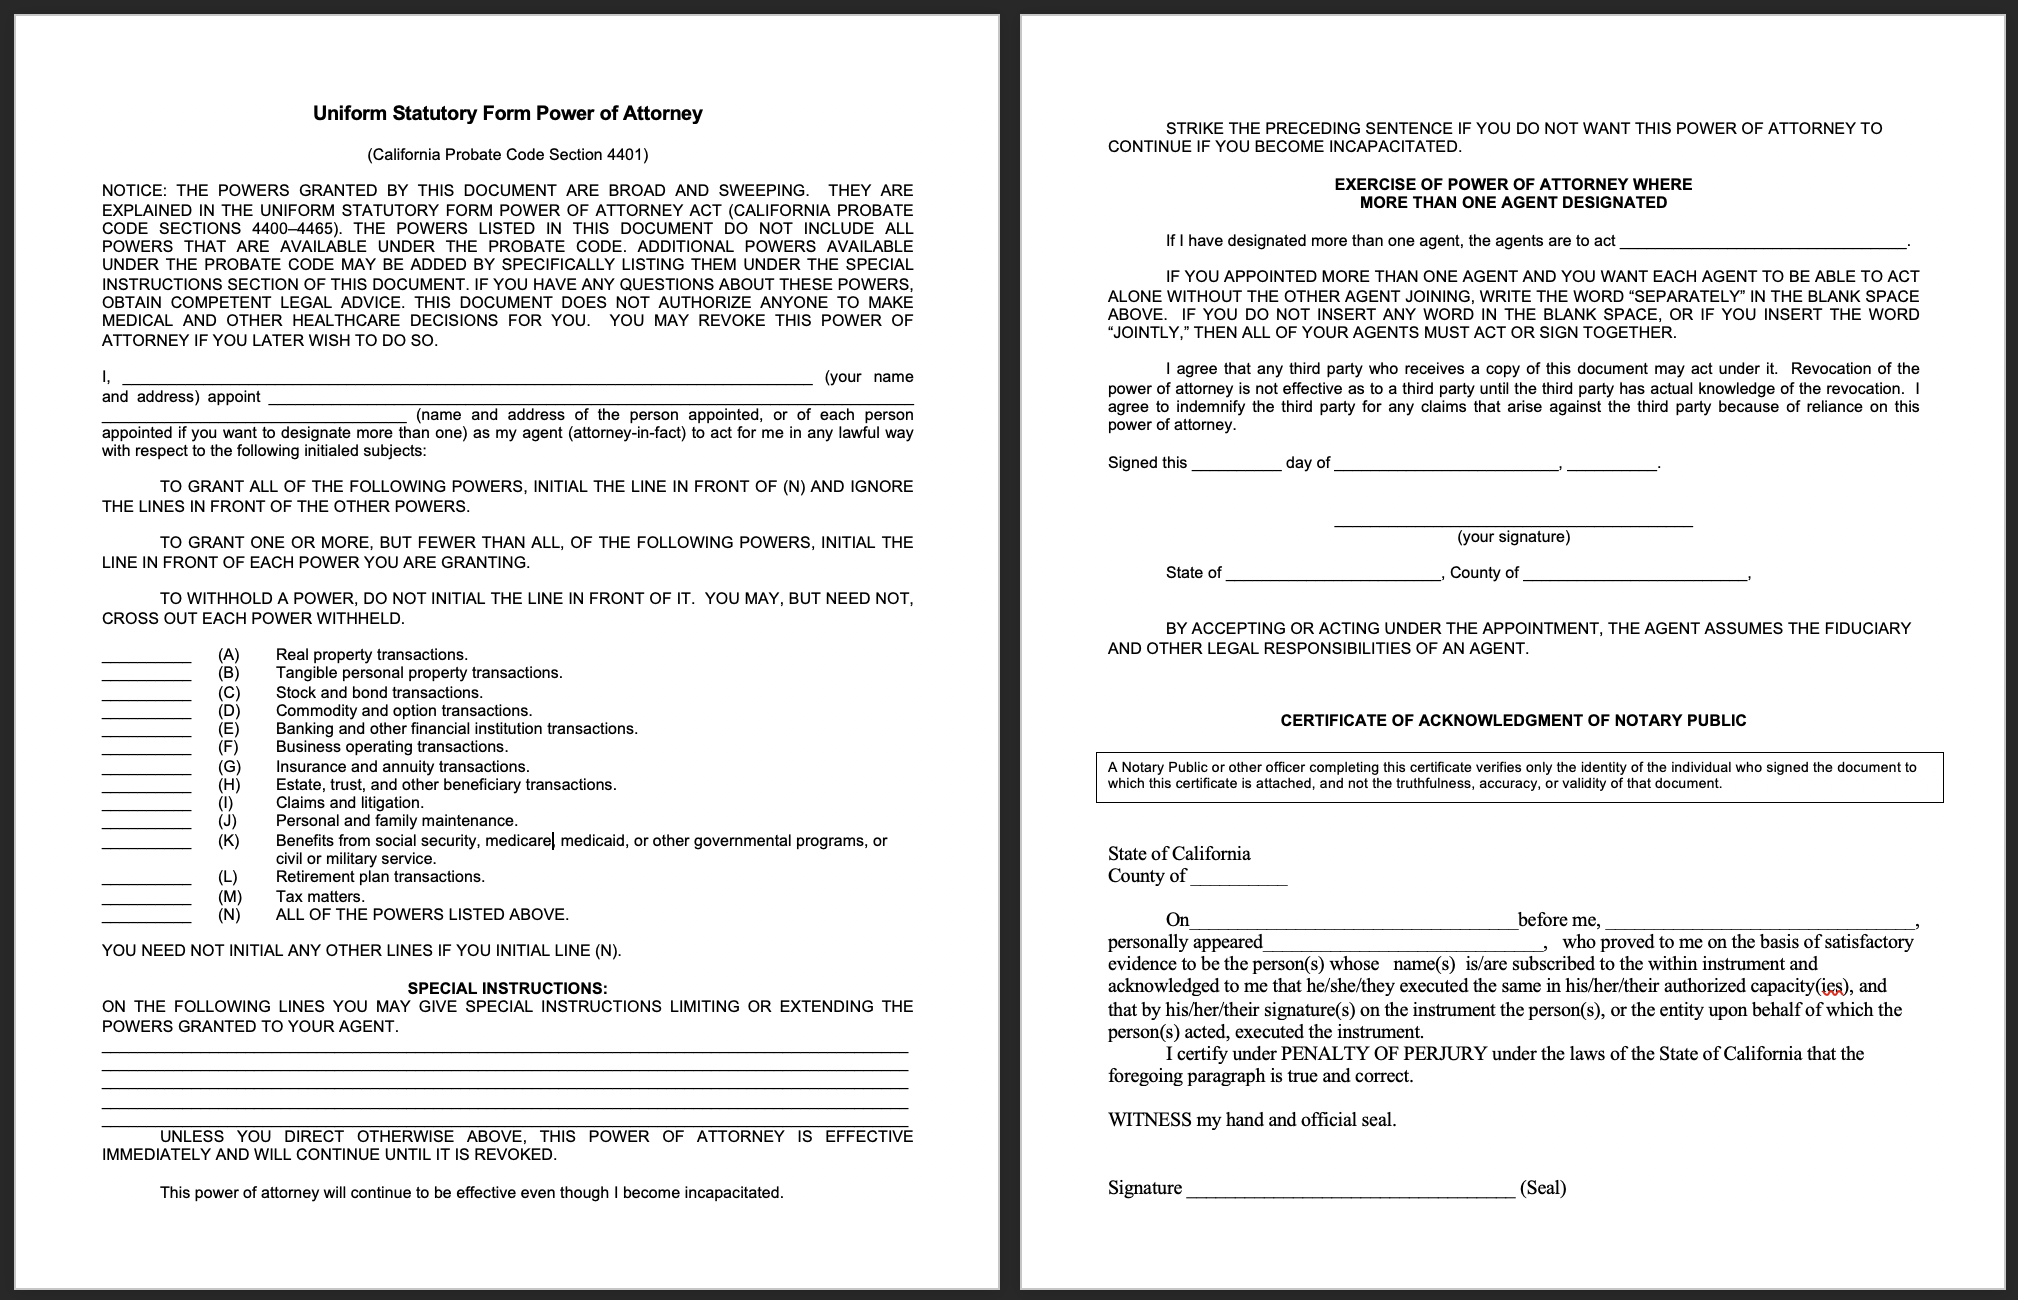 San Diego Notary, an image of a Power of Attorney Document that has not been filled out